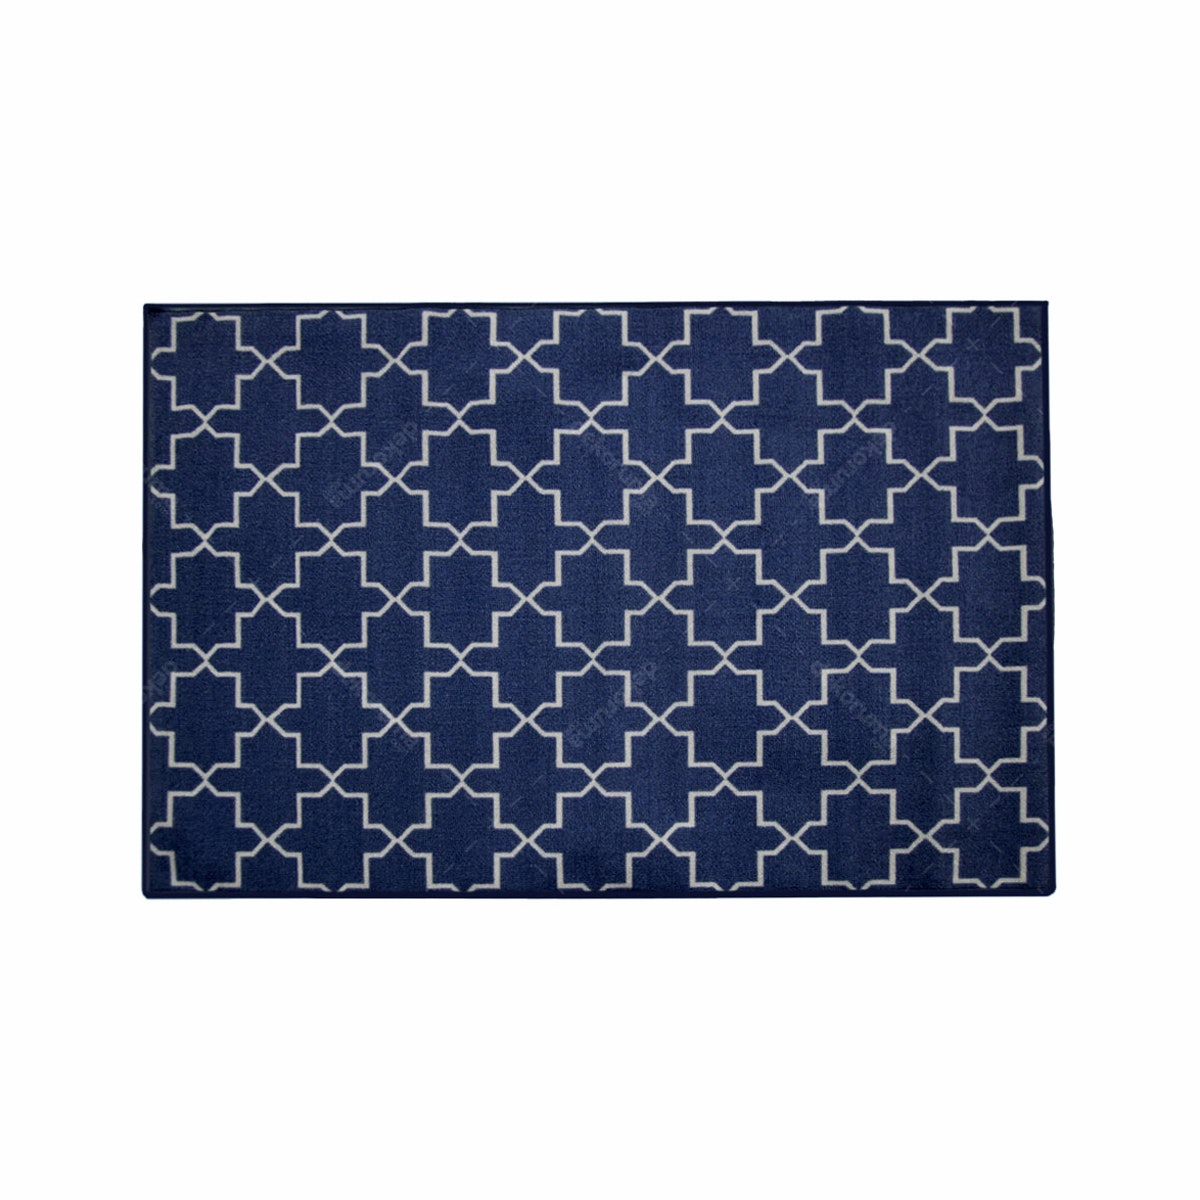 ARTSY Karpet Sweden Anti Slip 100x150 - Navy